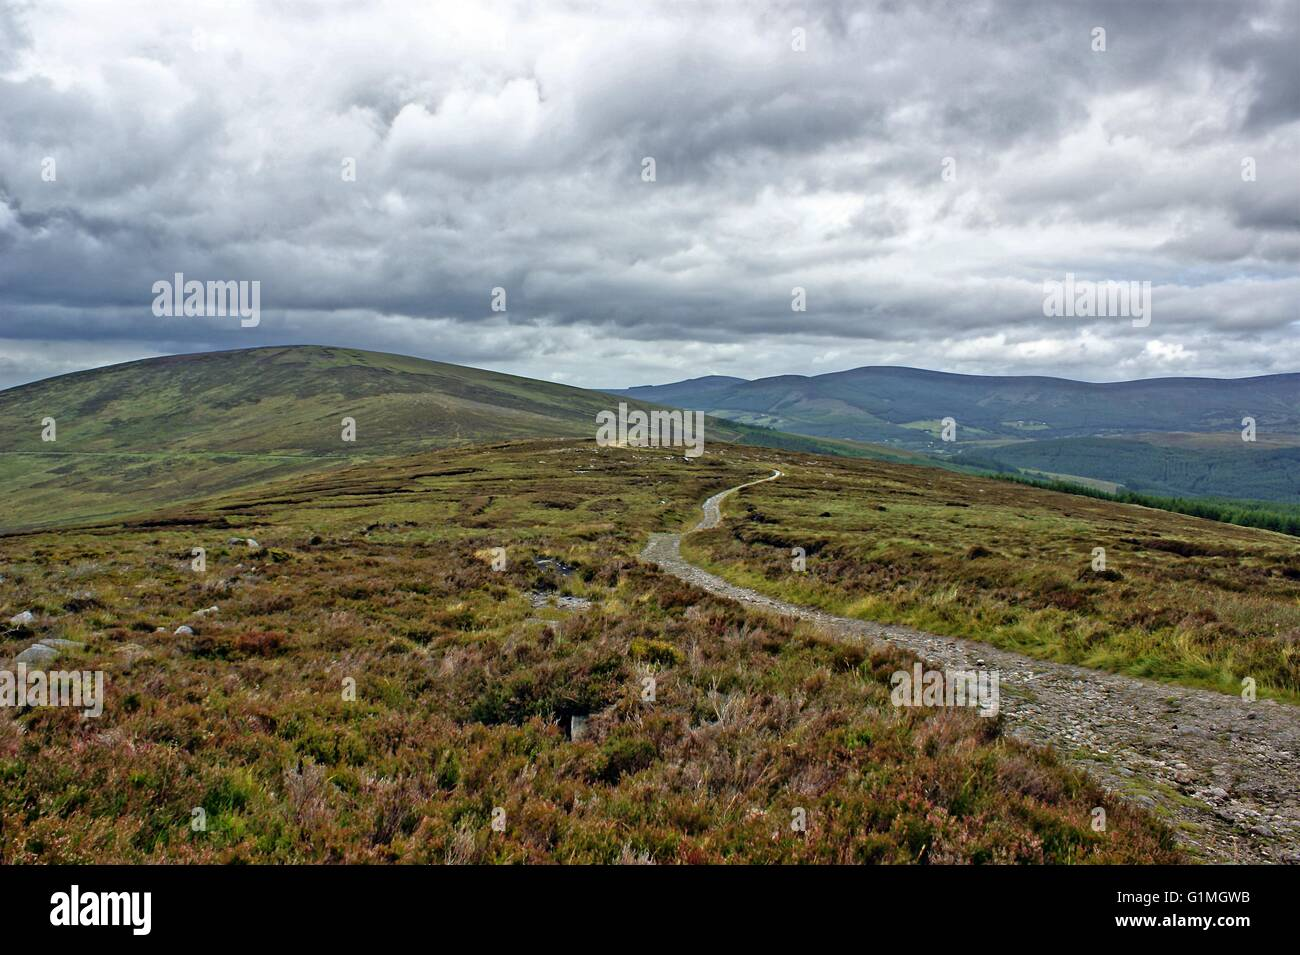 Irish mountain peaks in Ireland, near Dublin, Republic of Ireland, dramatic clouds and landscape, green grass. Stock Photo